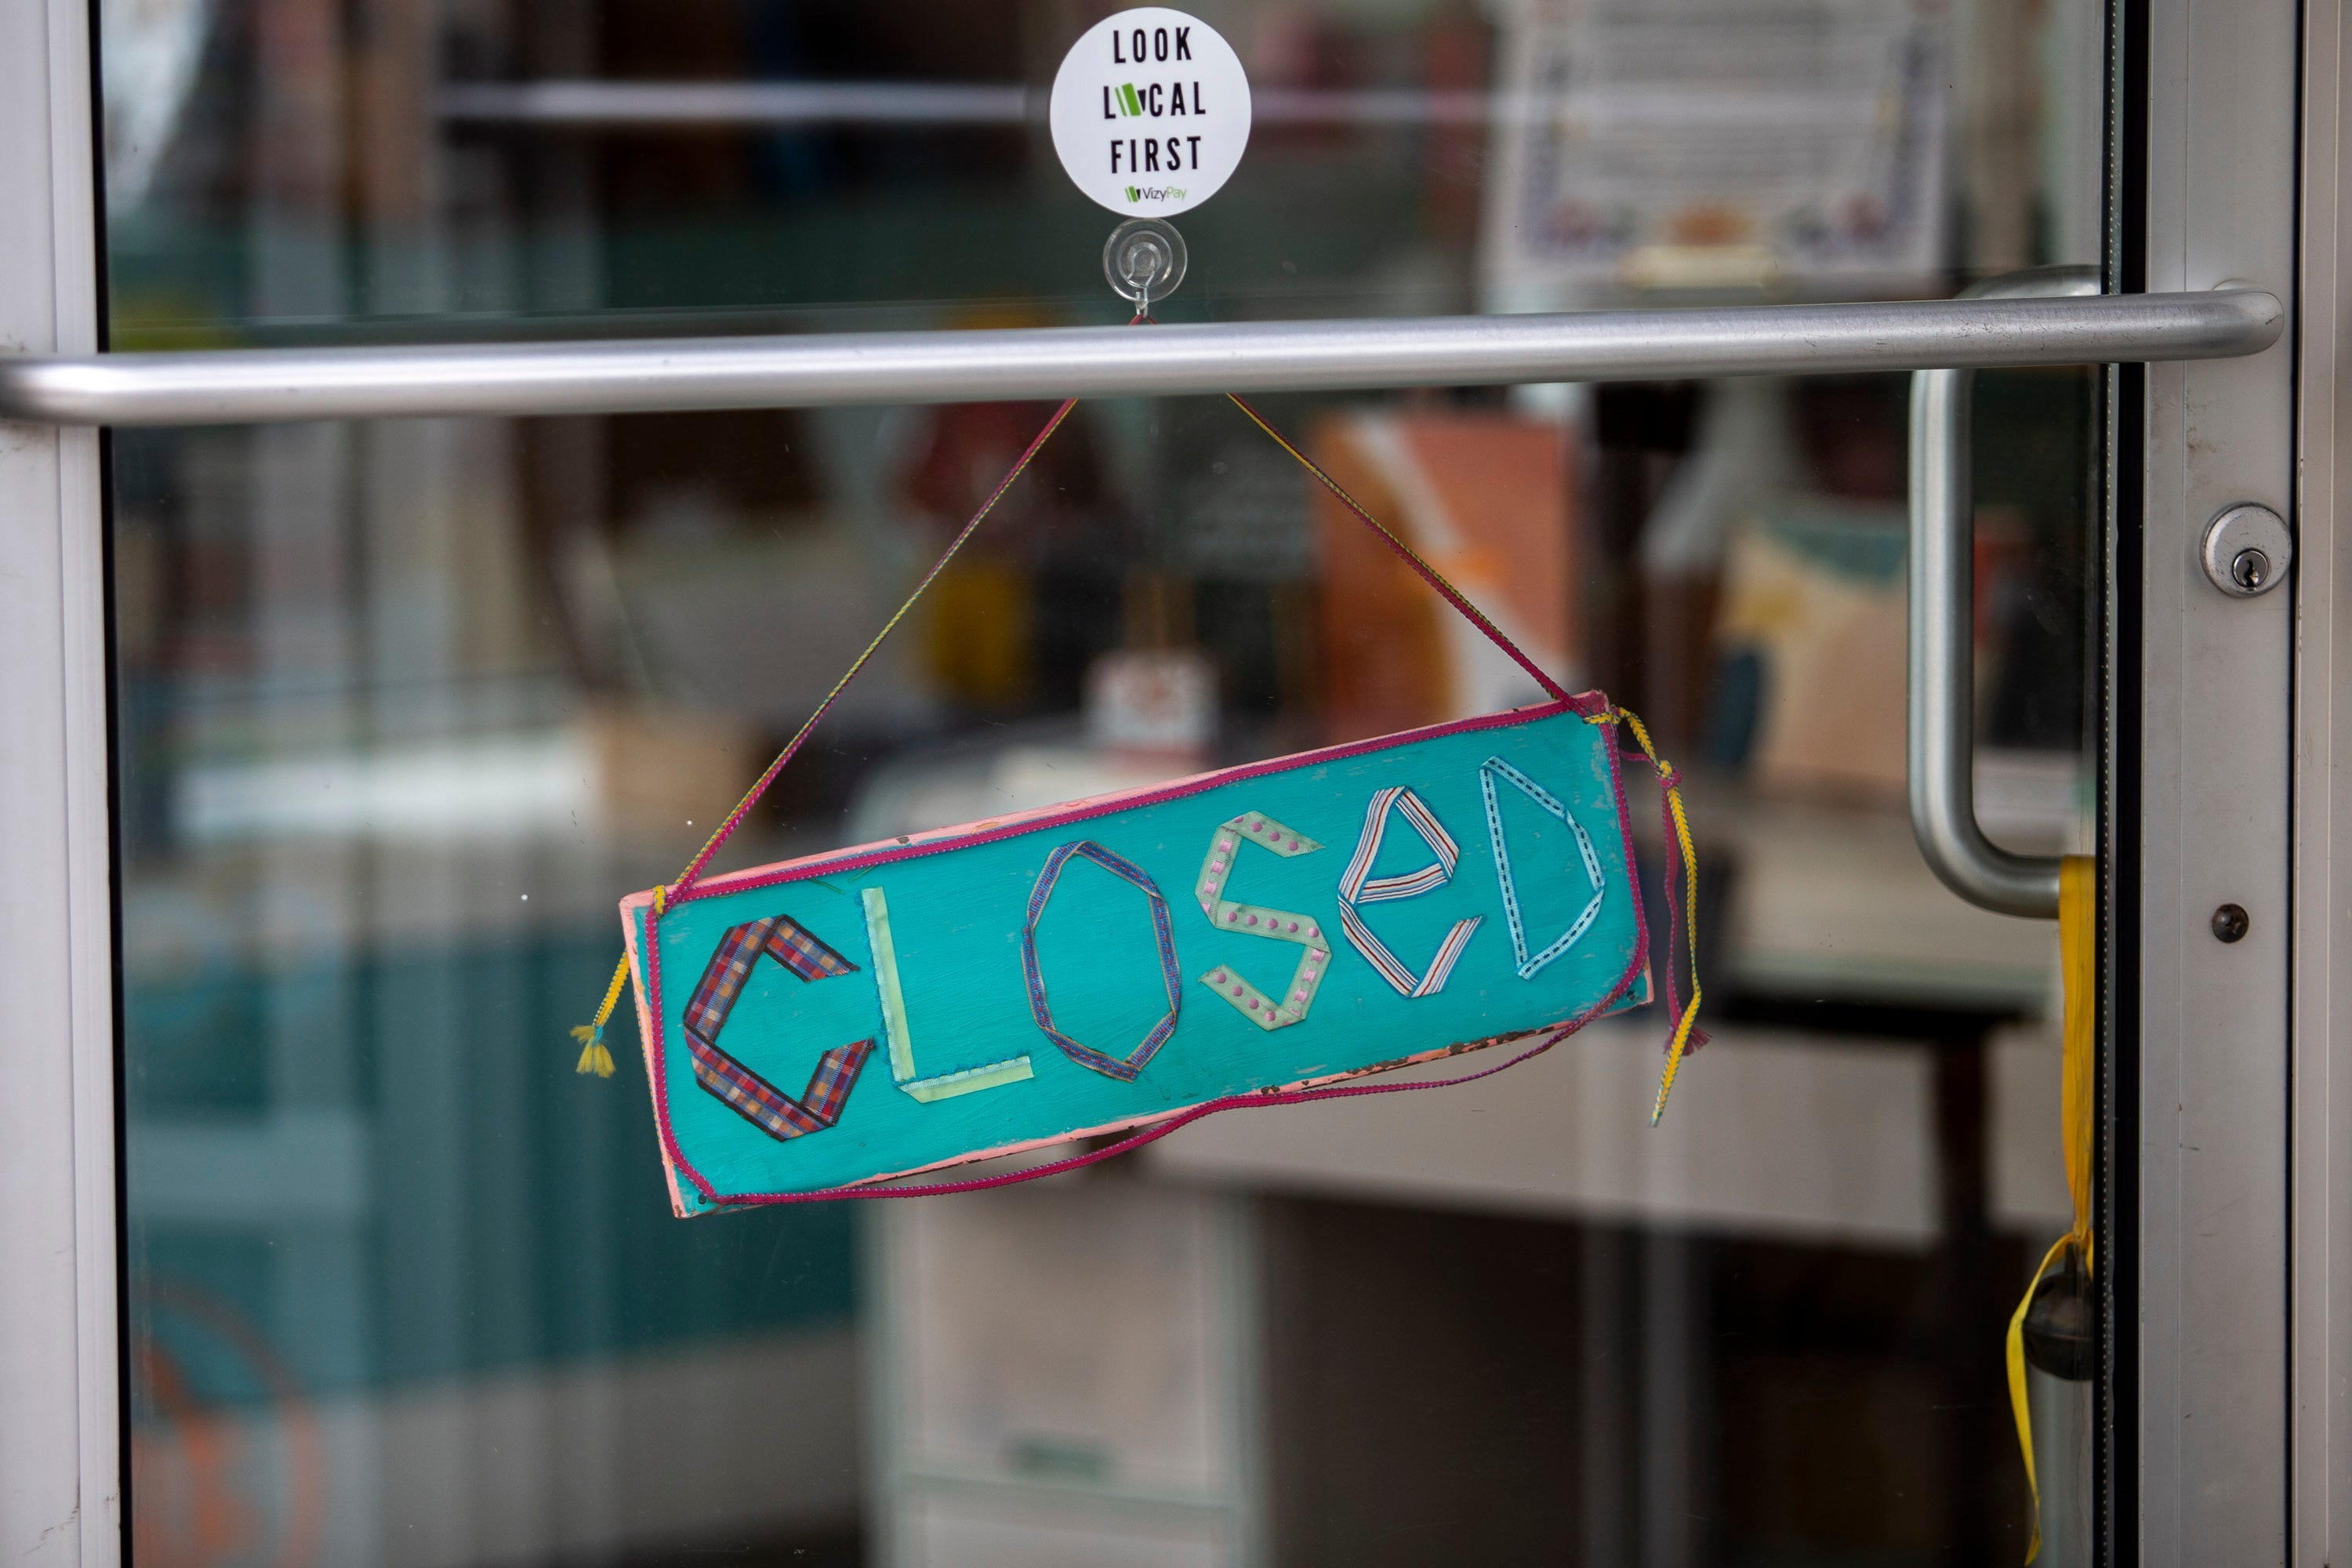 Closed sign on local business